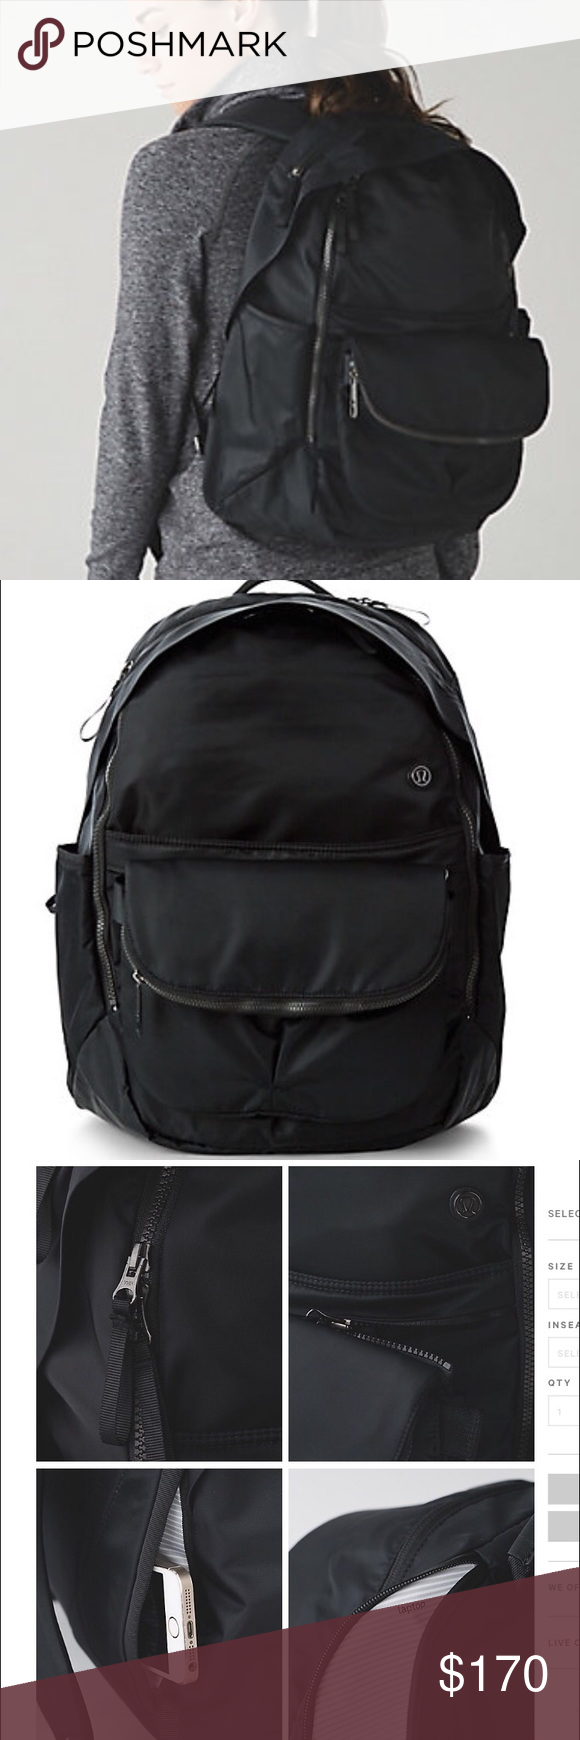 3fe5dfb7bc4d Lululemon All Day Backpack New